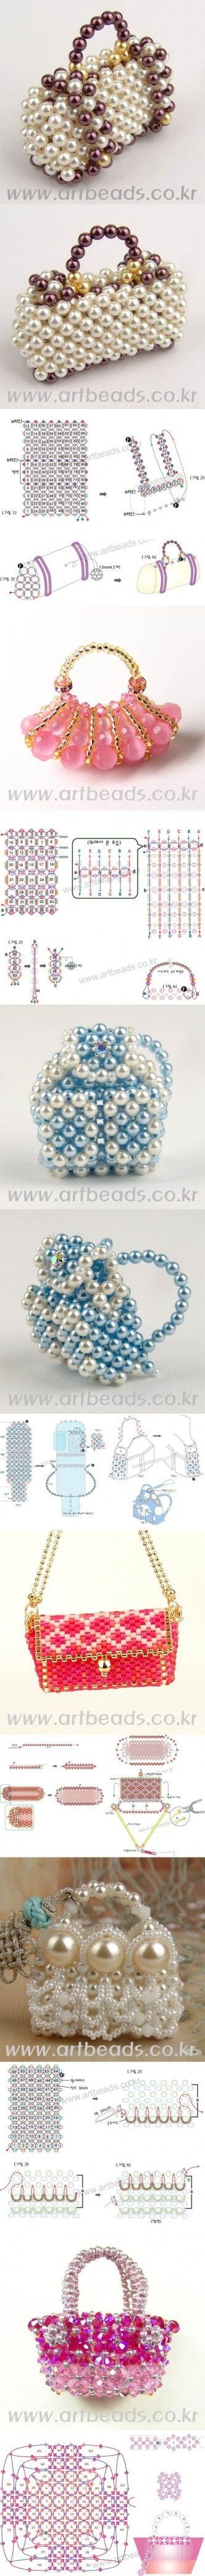 DIY Cute Miniature Beaded Handbags 2